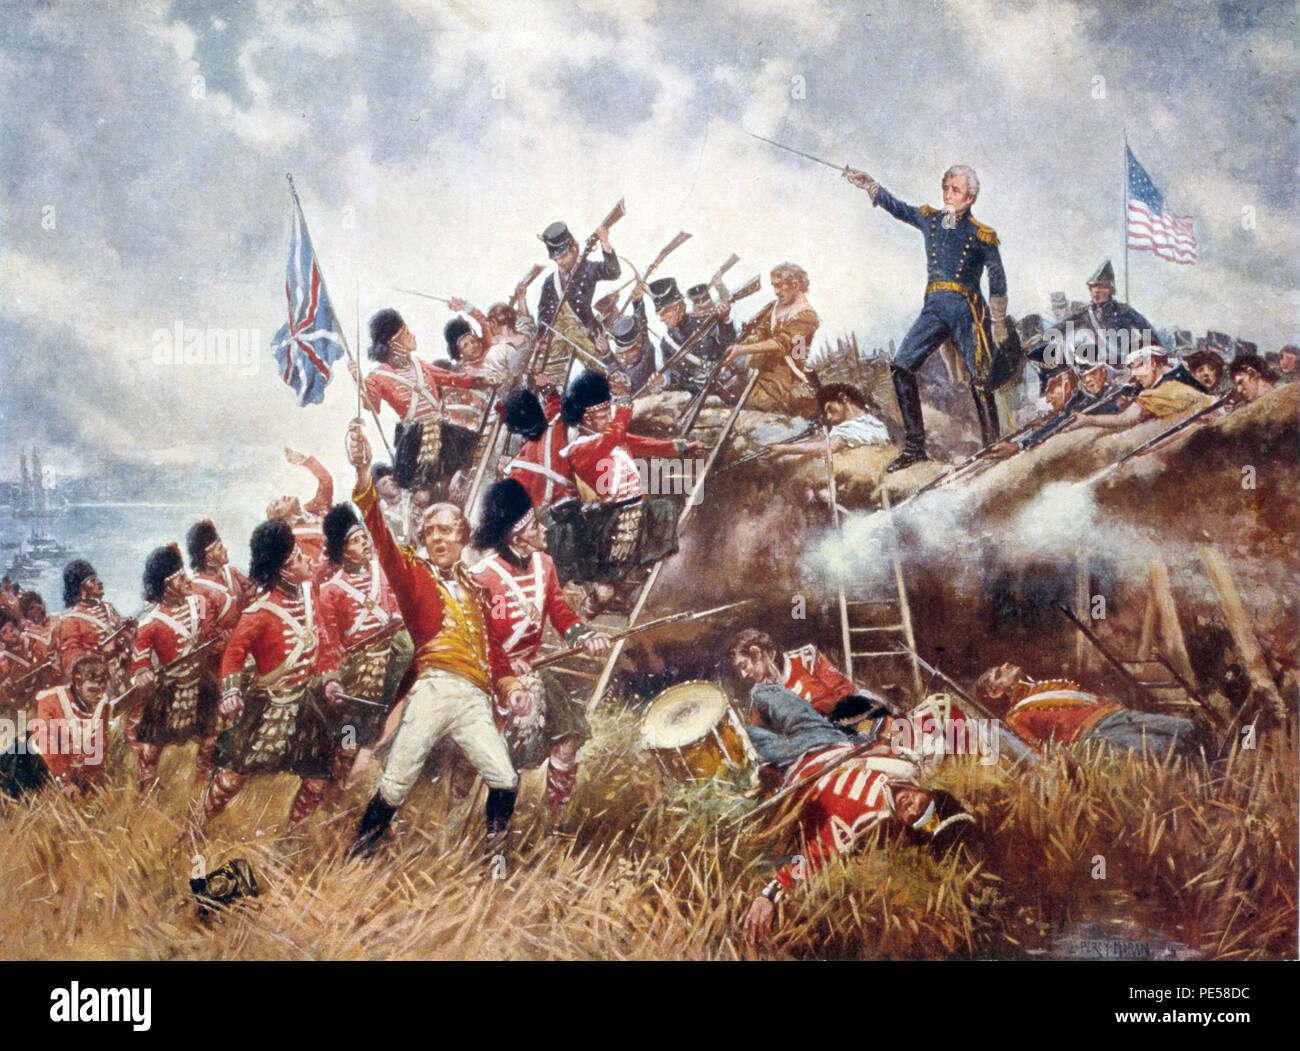 THE BATTLE OF NEW ORLEANS 8 January 1815 by Edward Moran (1910) with Andrew Jackson at right and Edward Pakenham at left - Stock Image